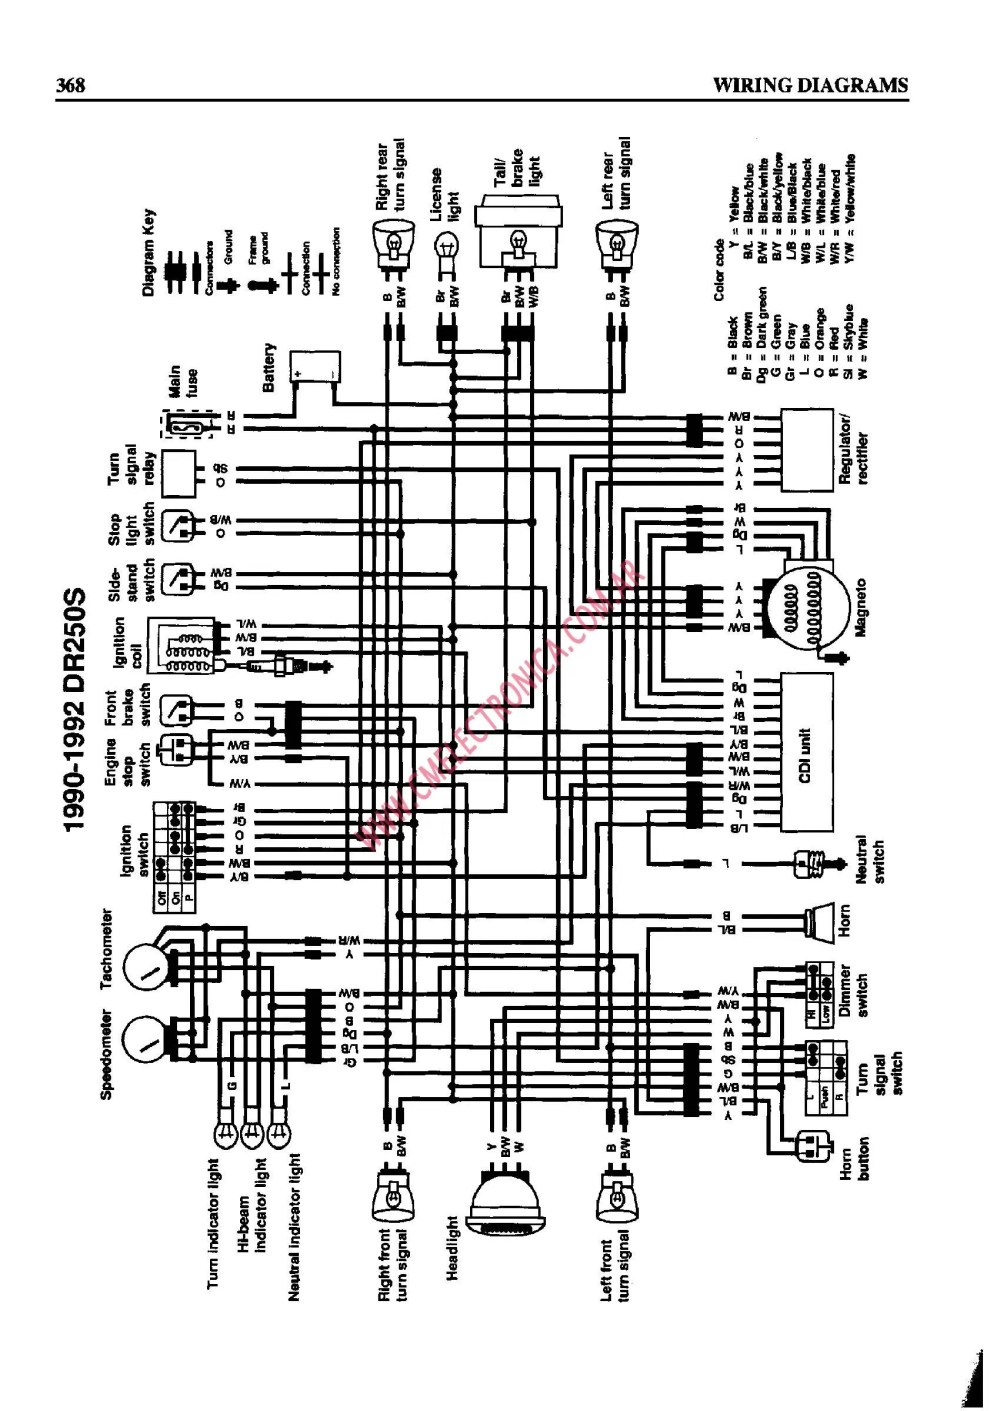 medium resolution of suzuki 250 wiring diagram